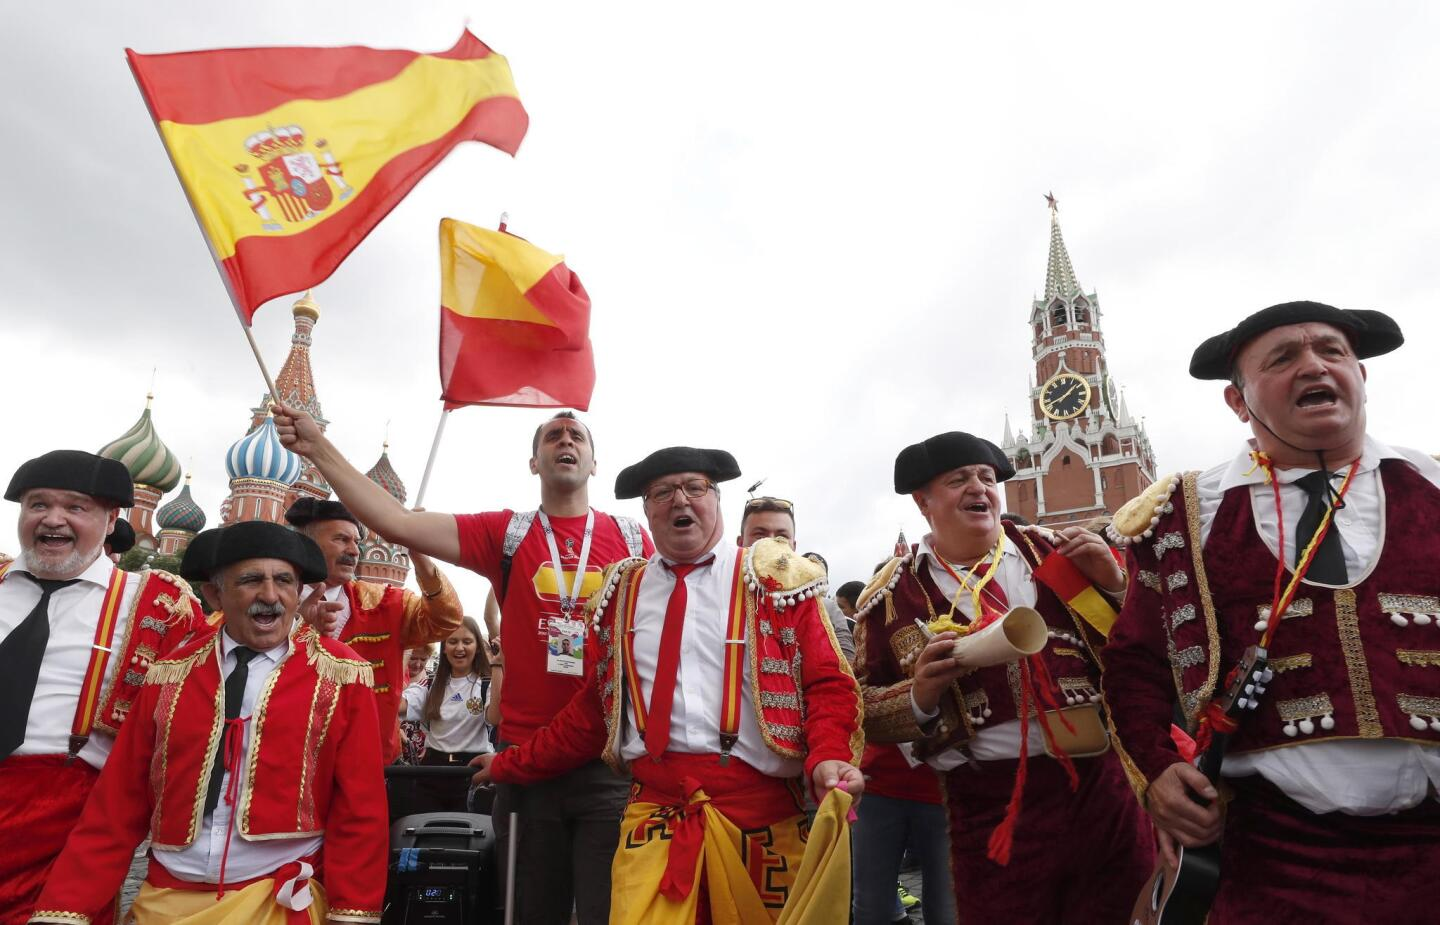 Moscow feature FIFA World Cup 2018